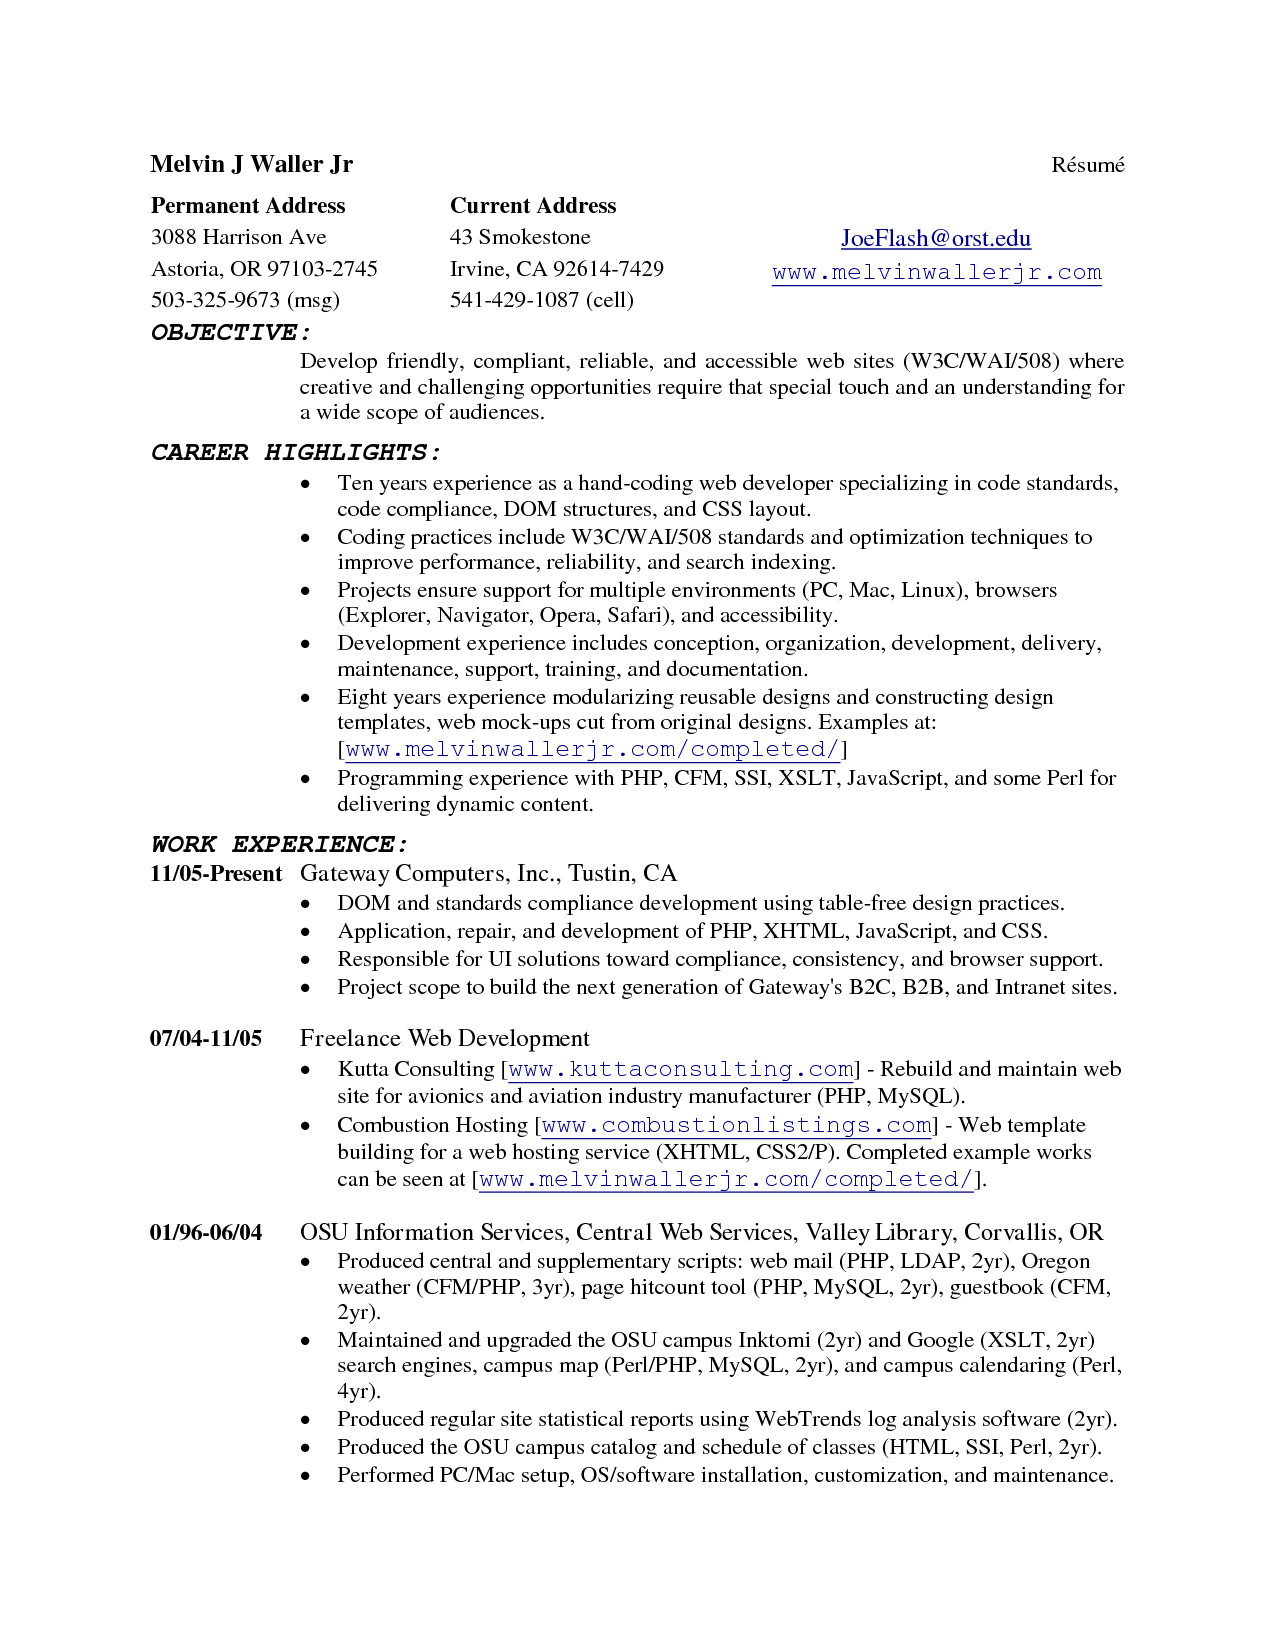 Open Office Cover Letter Template - Writer Resume Template Financial Services Resume Template New Hr